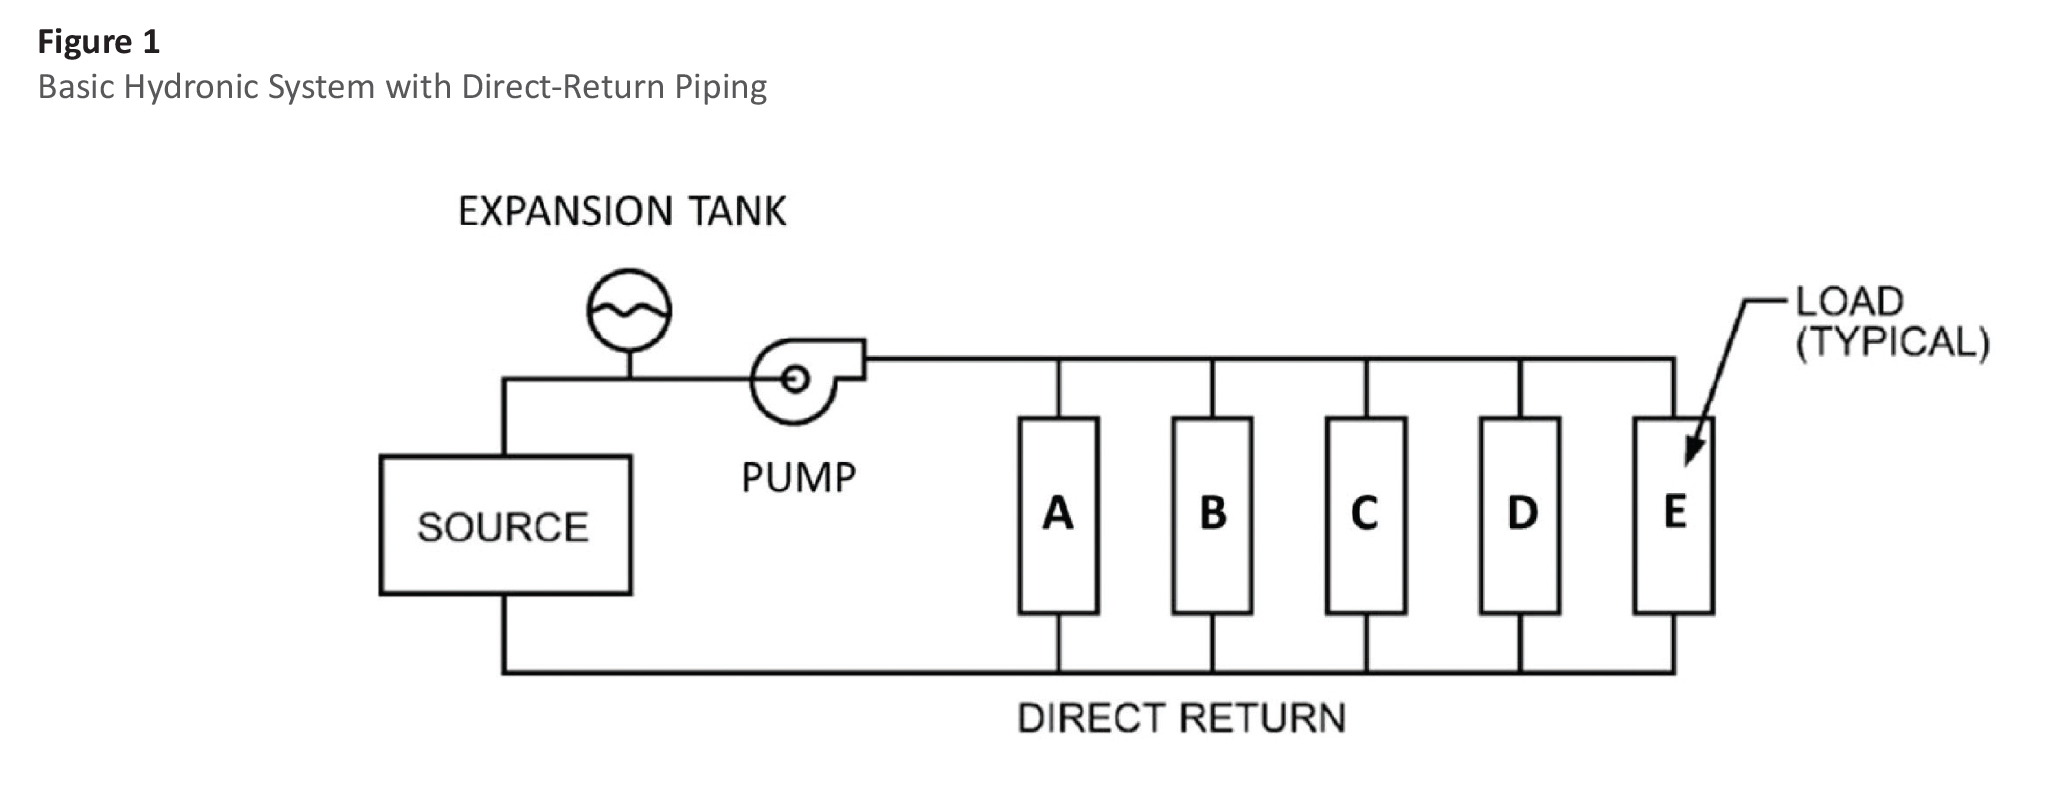 wrg 4671 vanagon fuse box diagram unicell wiring diagram vanagon fuse box diagram unicell powered unicells versus coenocytic hyphae